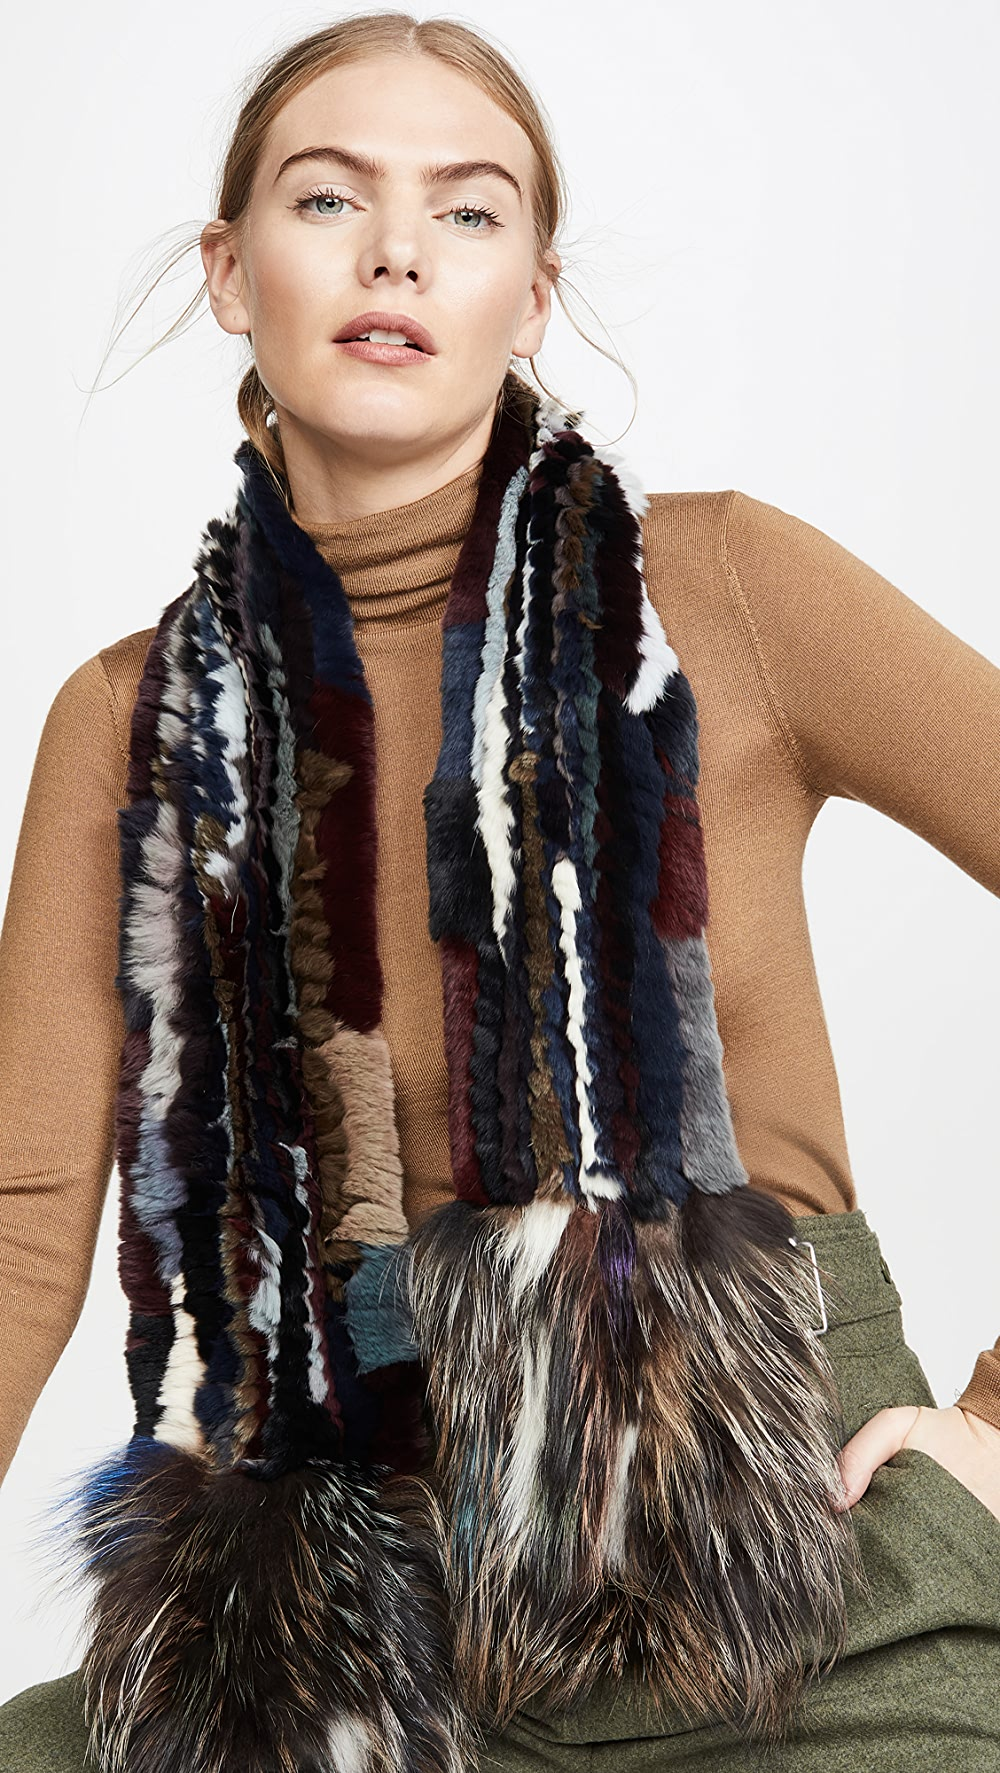 Collection Here Adrienne Landau - Knit Rex Rabbit Scarf With Fox Trim Fixing Prices According To Quality Of Products